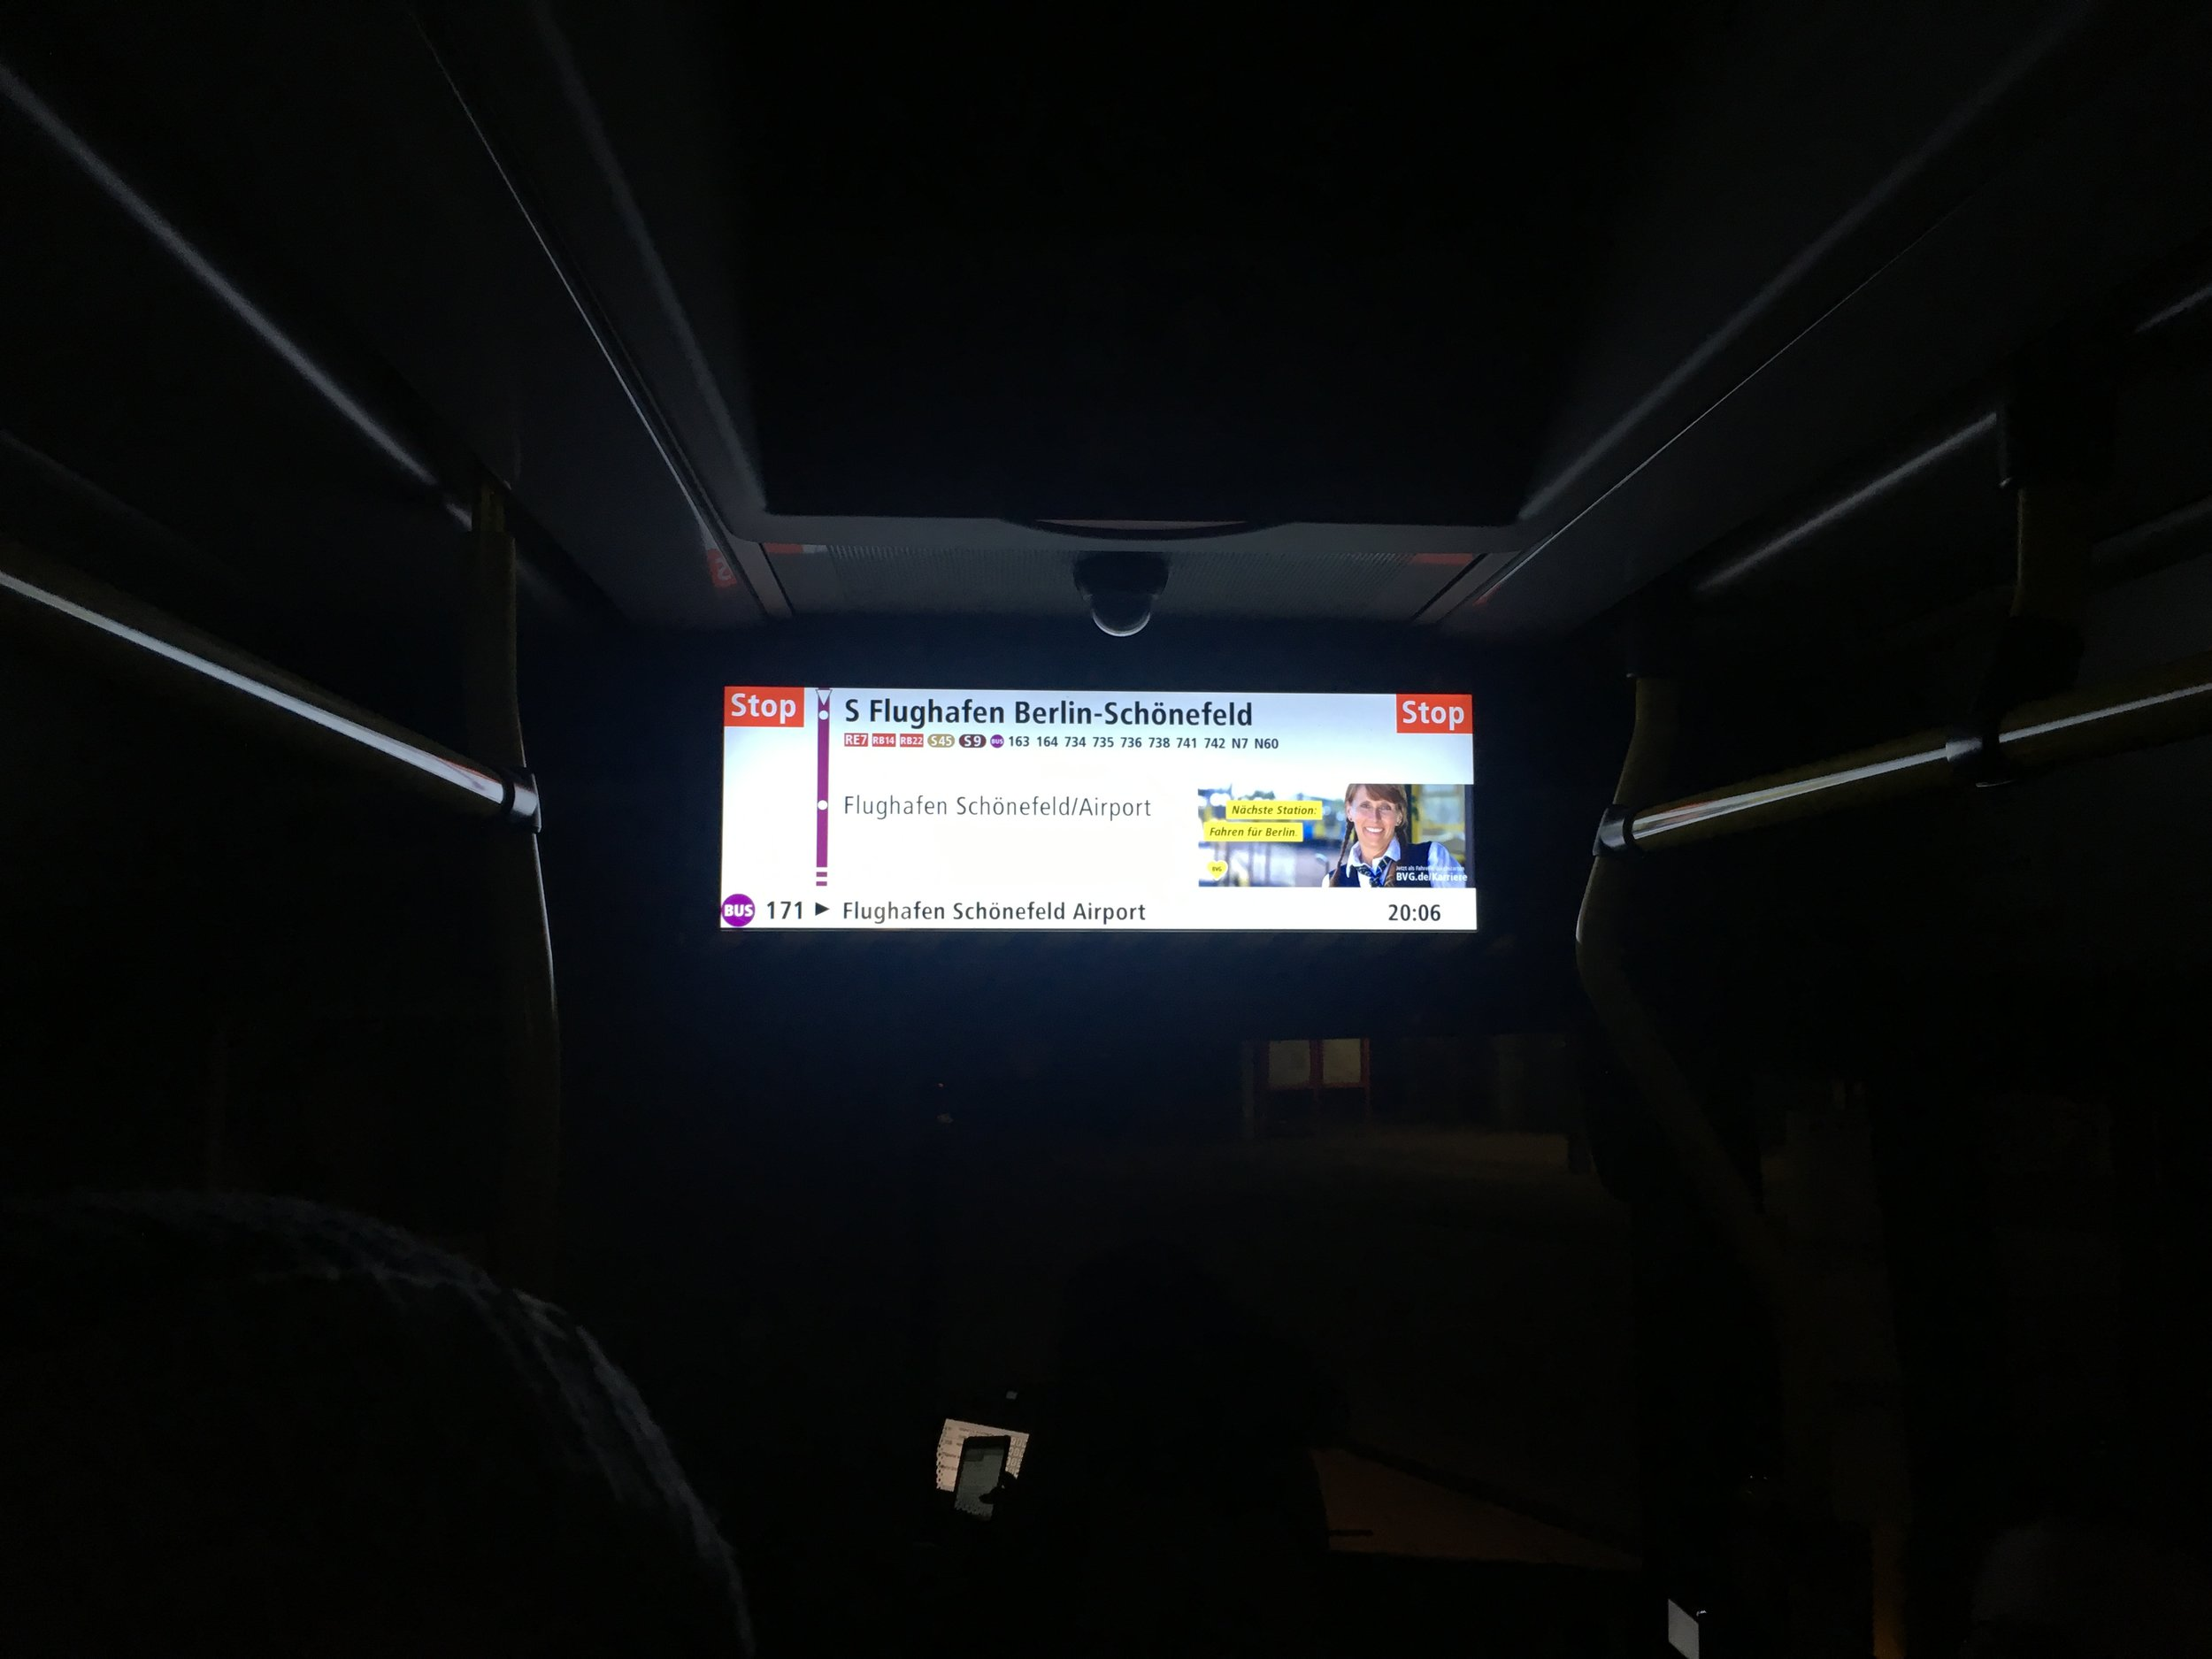 The screen on the public bus displaying the next station as well as the final destination.